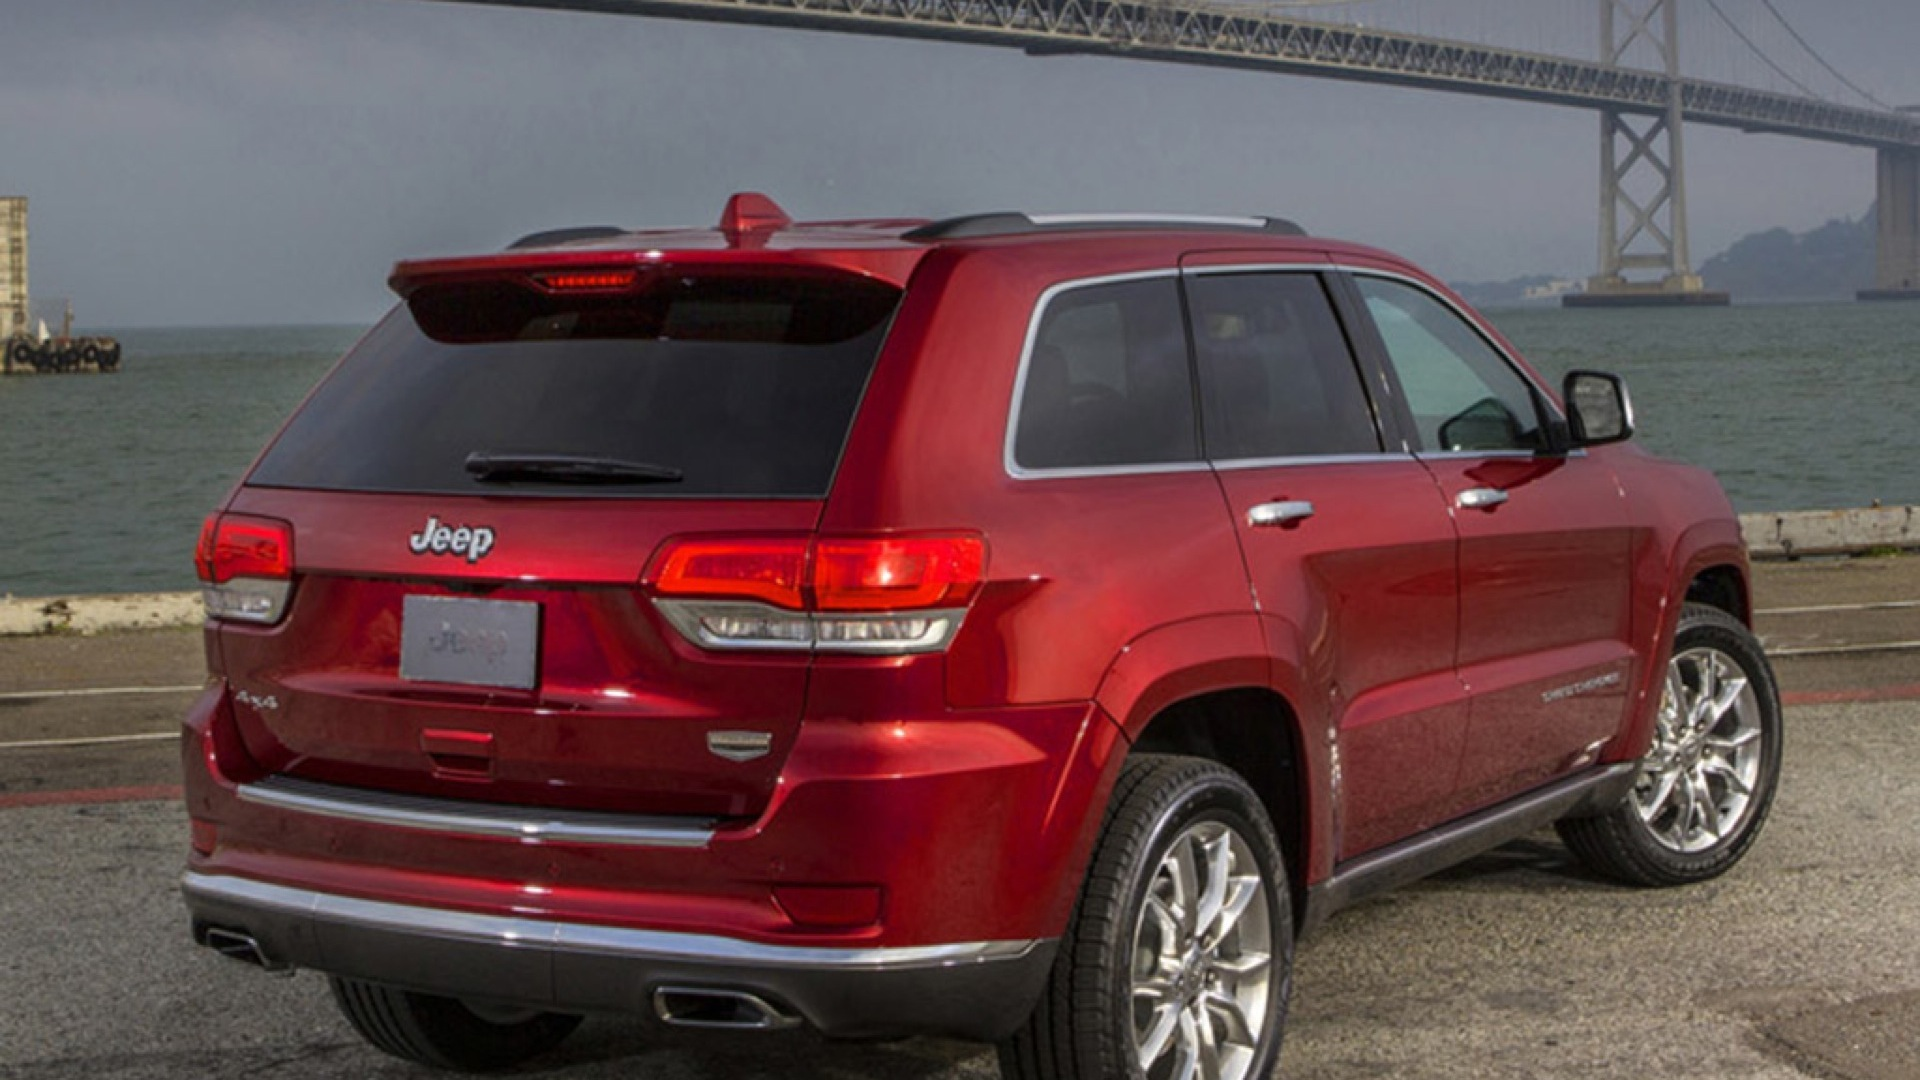 jeep grand cherokee 2017 price mileage reviews specification gallery overdrive. Black Bedroom Furniture Sets. Home Design Ideas